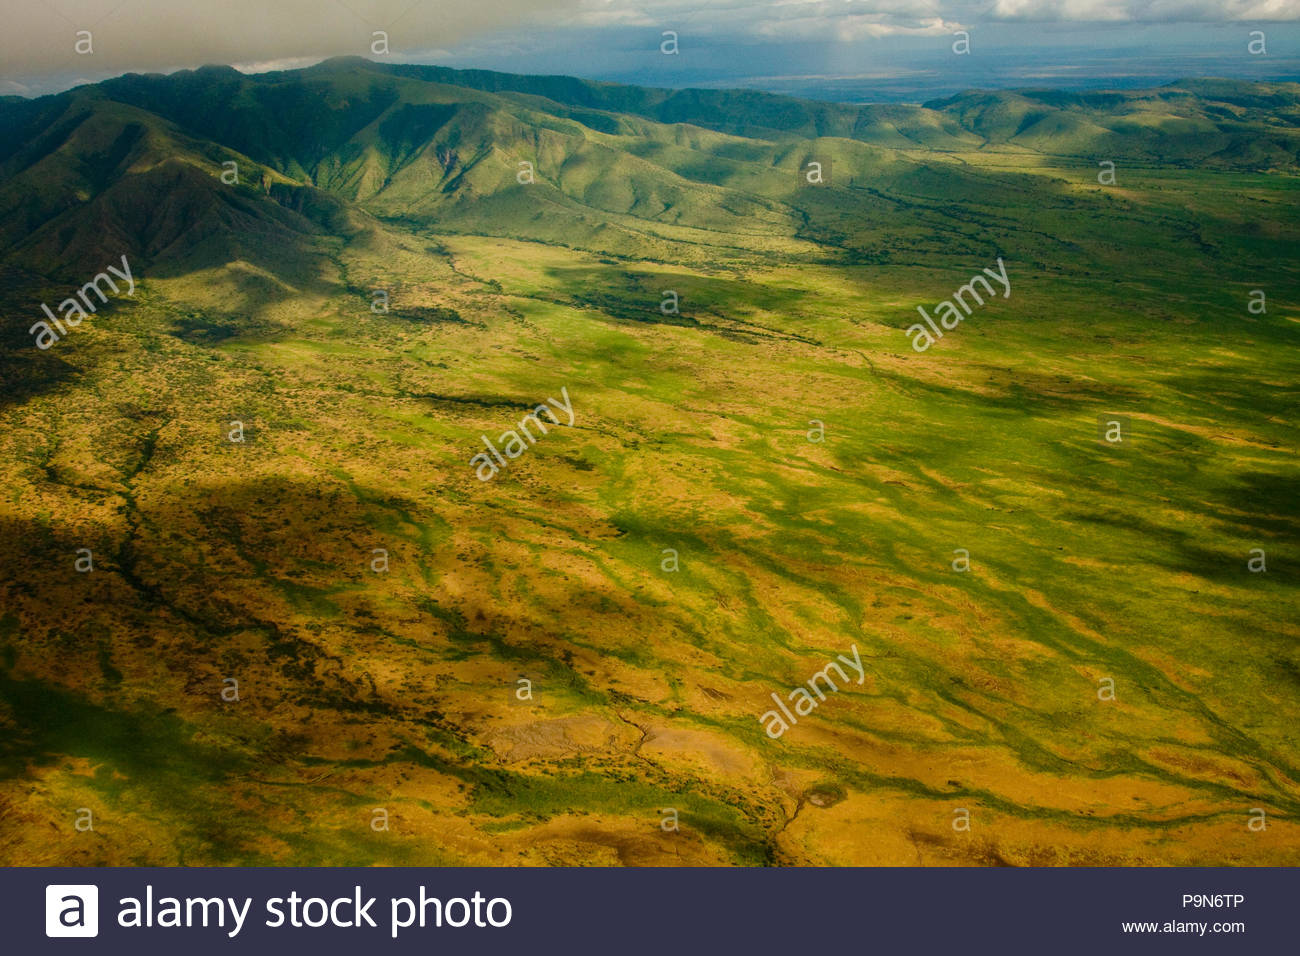 Aerial of mountains and farmland near Lake Manyara, Tanzania. - Stock Image